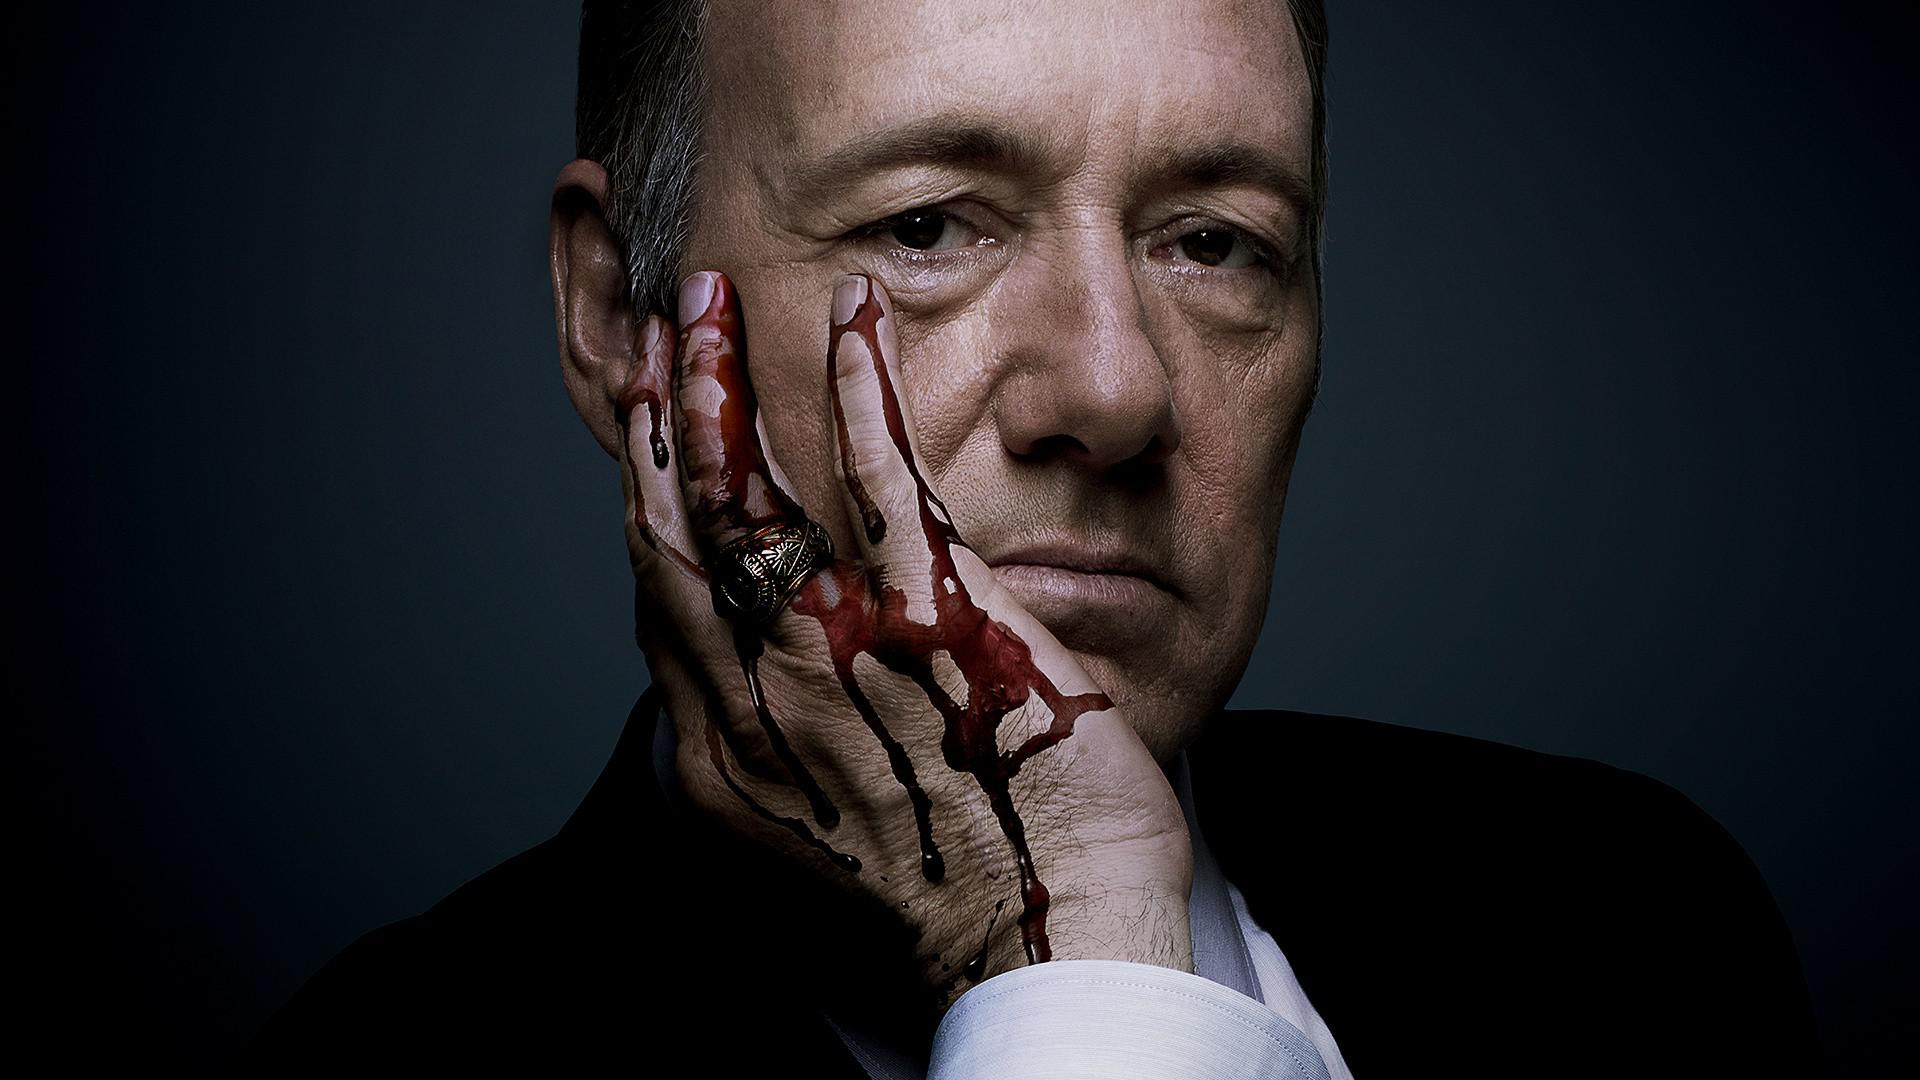 In foto, Kevin Spacey, il Frank Underwood di House of Cards